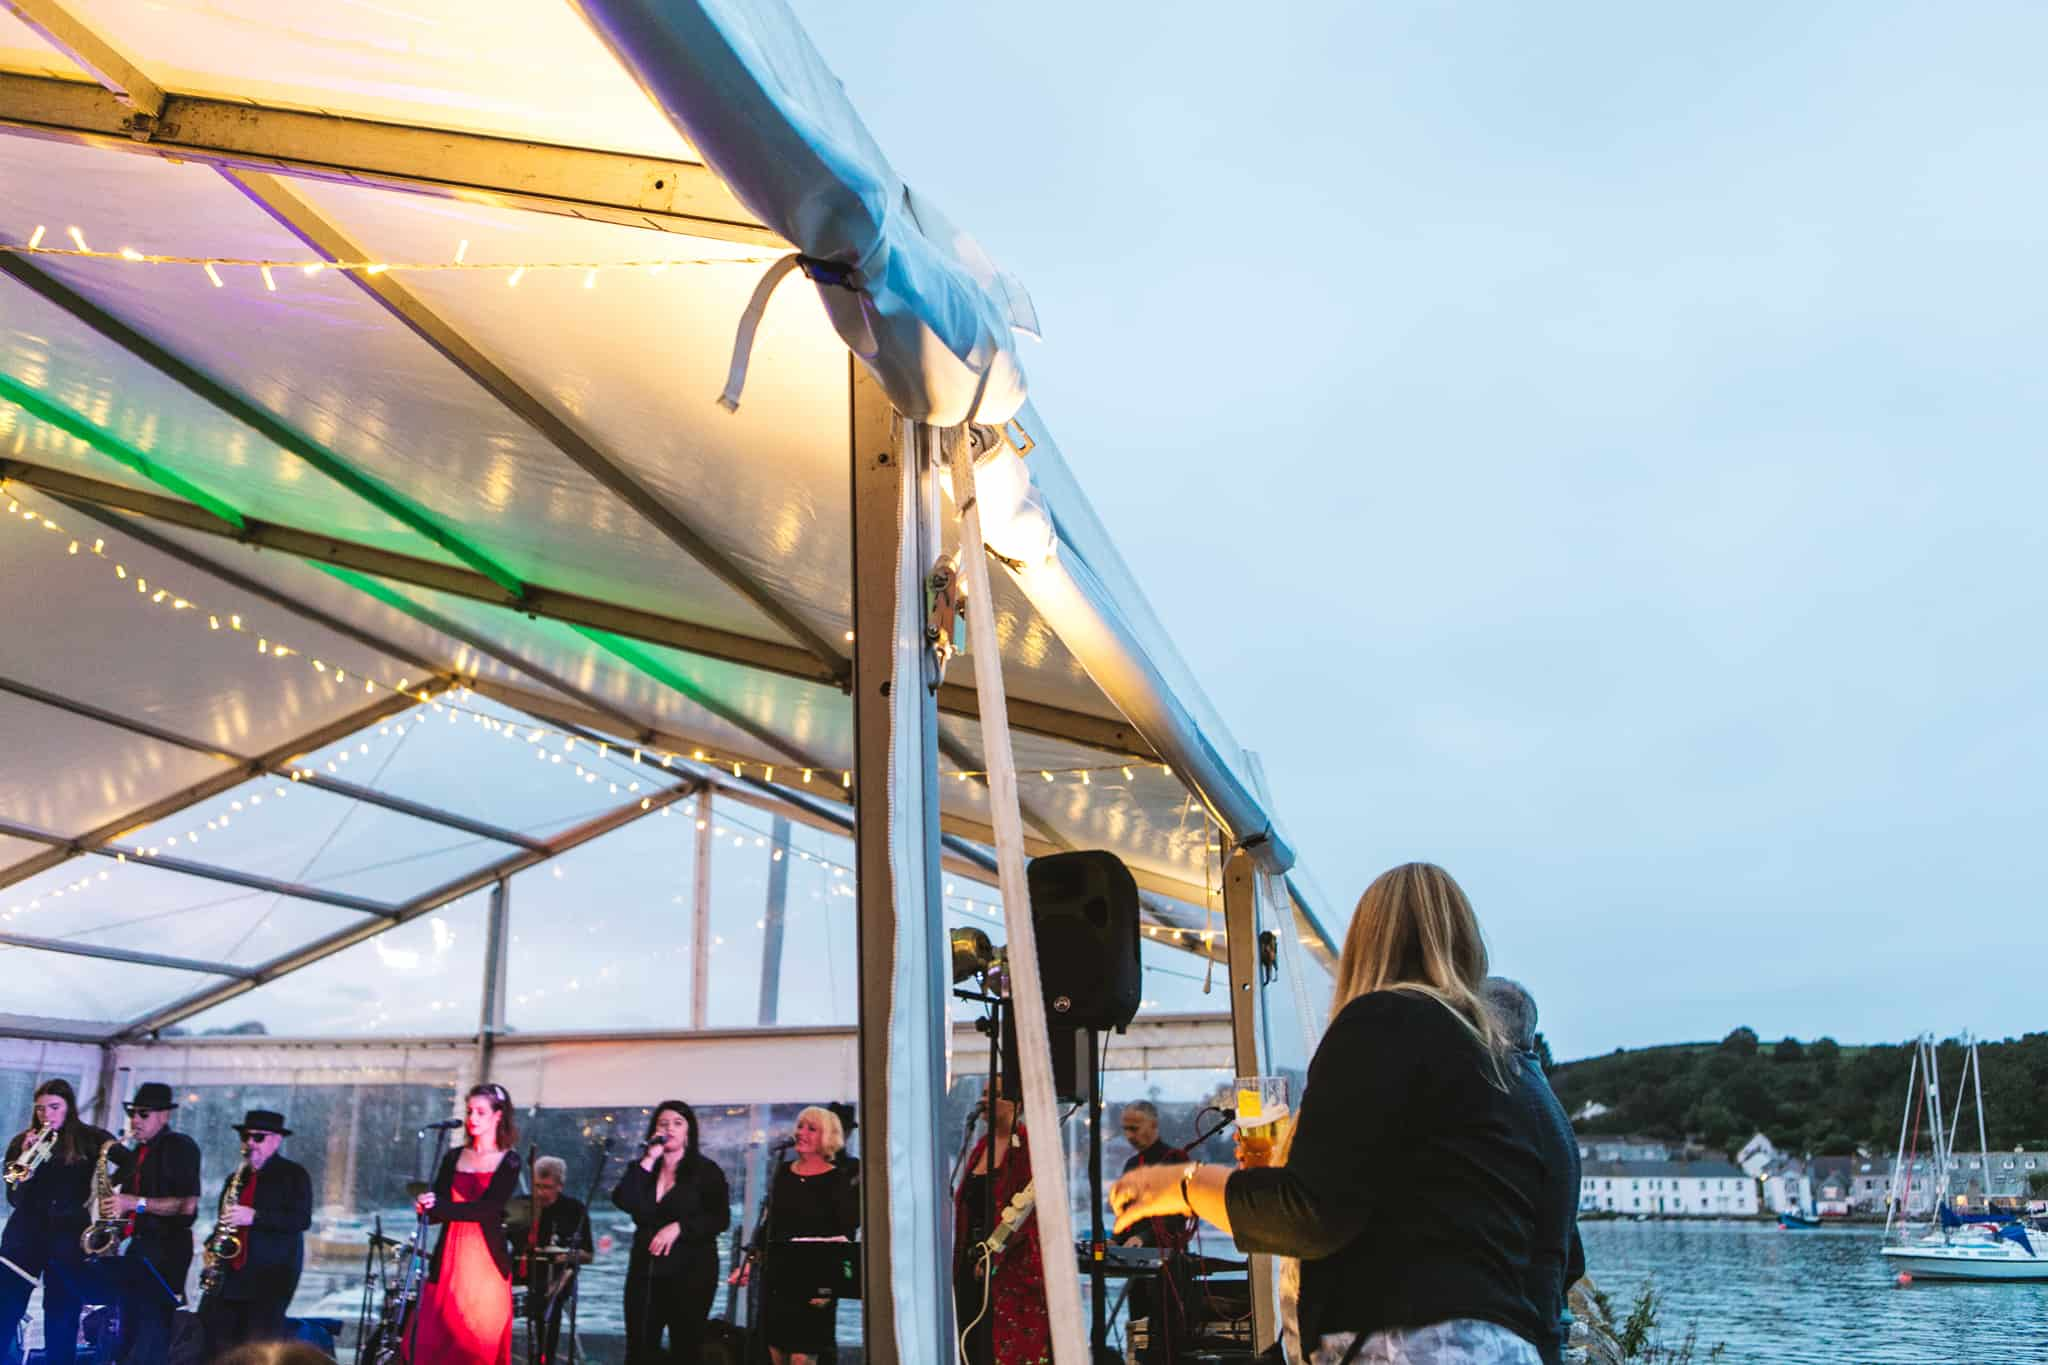 falmouth-week-at-the-working-boat-pub-live-music-events-falmouth-cornwall (50 of 114)